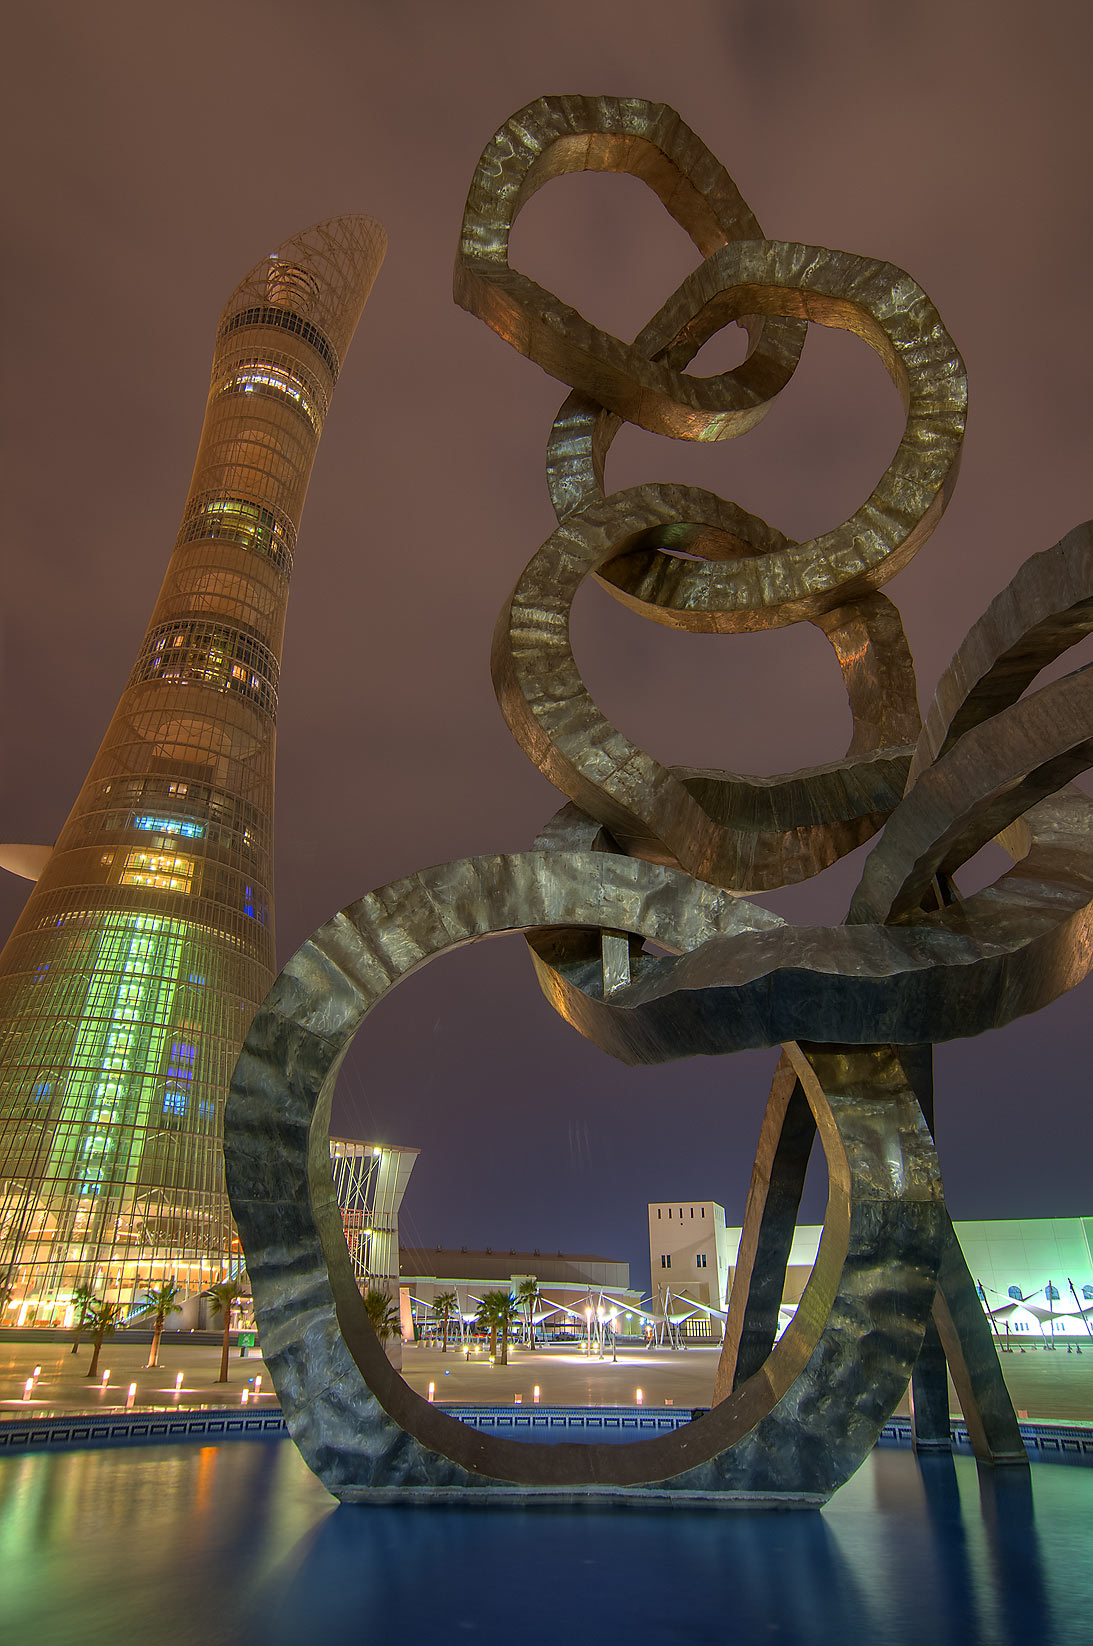 Torch Hotel and Olympic rings sculpture in Aspire Zone. Doha, Qatar